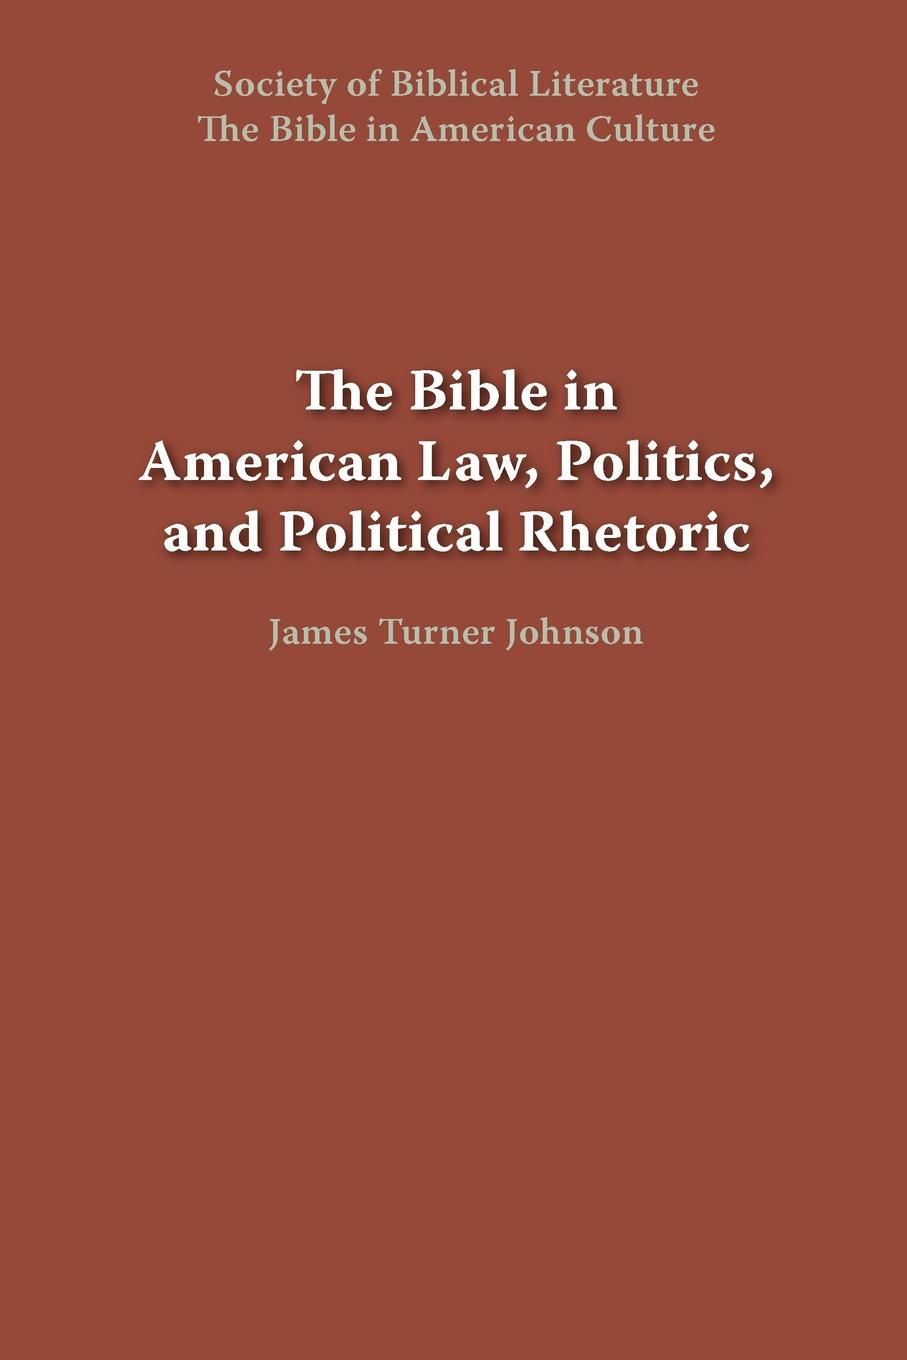 The Bible in American Law, Politics, and Political Rhetoric burke o long planting and reaping albright politics ideology and interpreting the bible